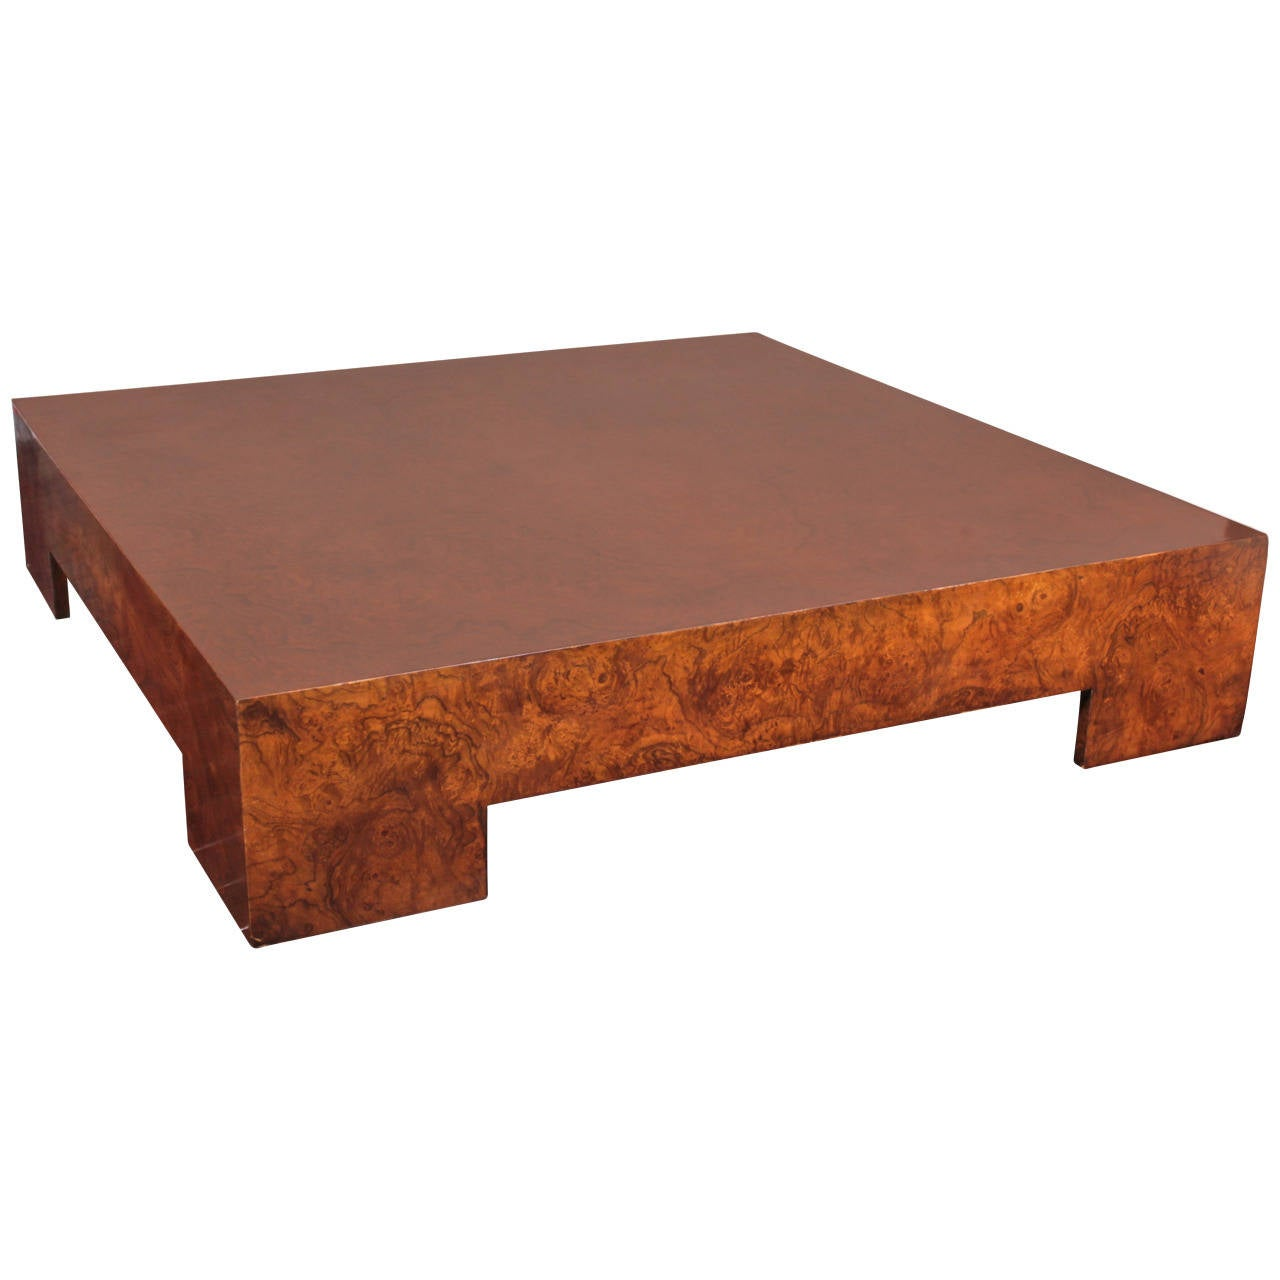 Milo baughman burl olivewood square low table at 1stdibs Low coffee table square